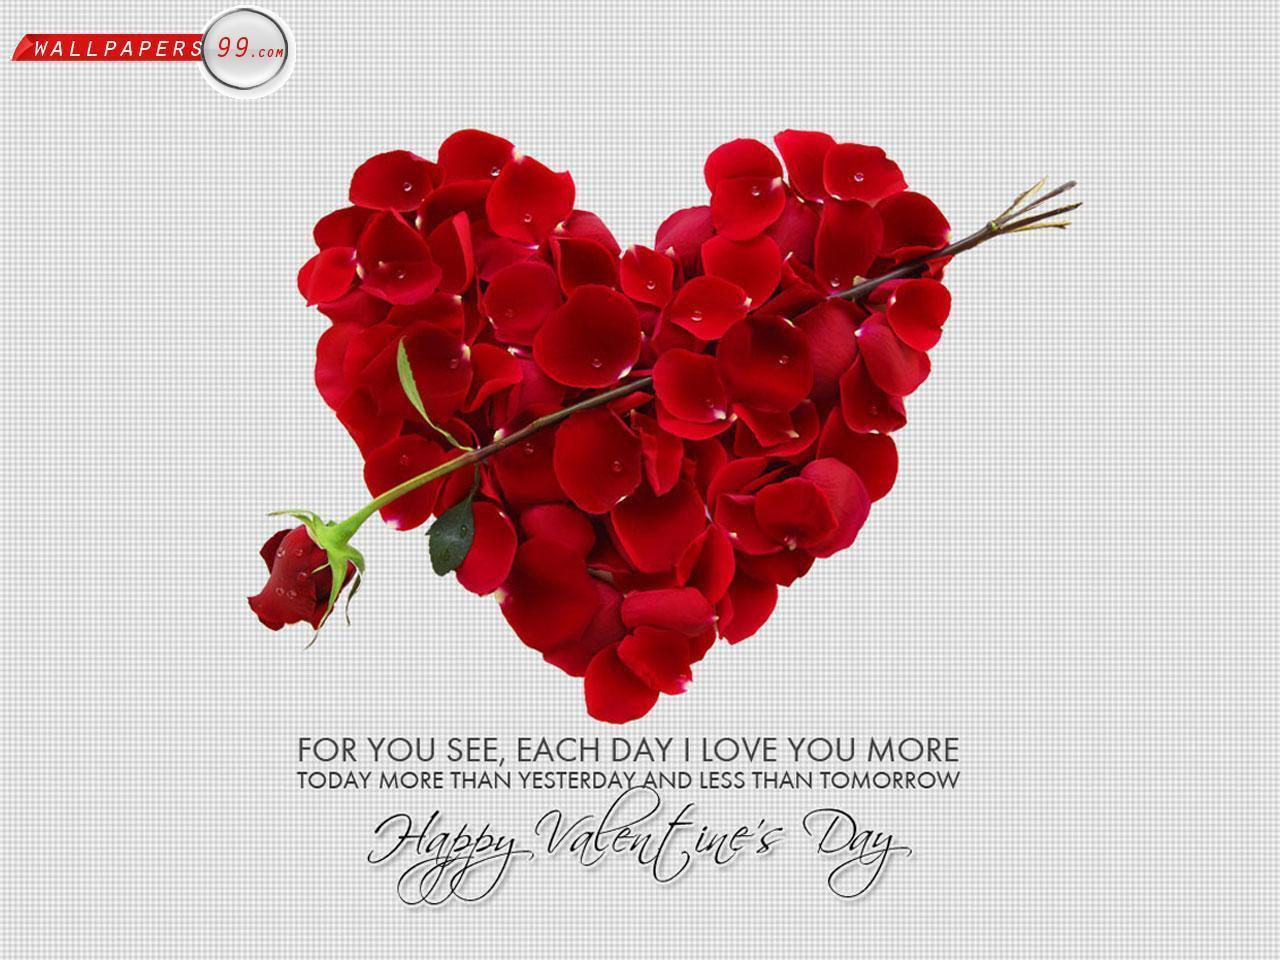 40 Loving and Heart Shaped Wallpapers on Valentine Day 2013